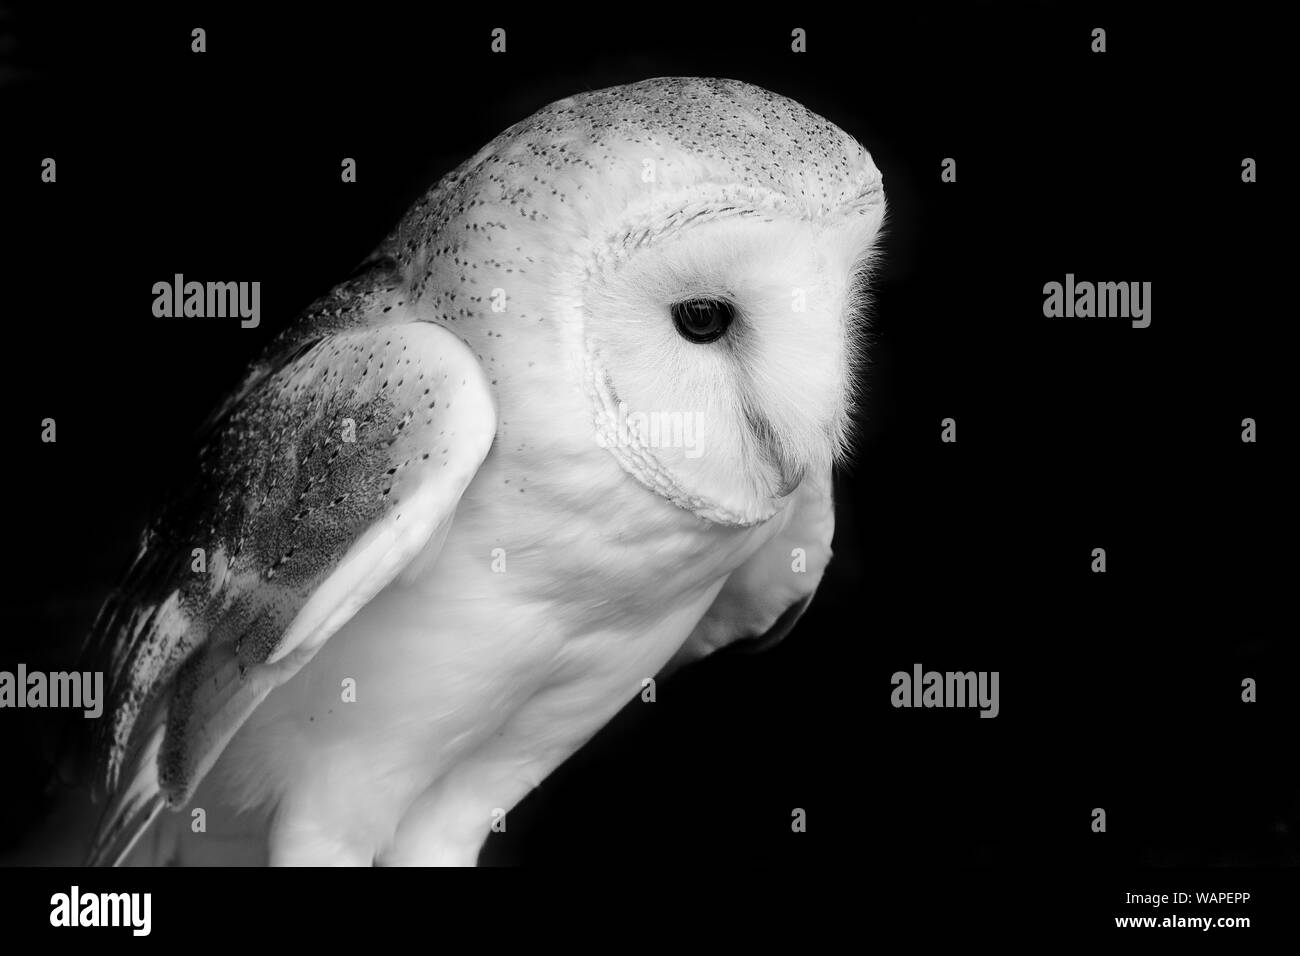 Black and white photo of a barn owl (tyto albus) with a black background Stock Photo